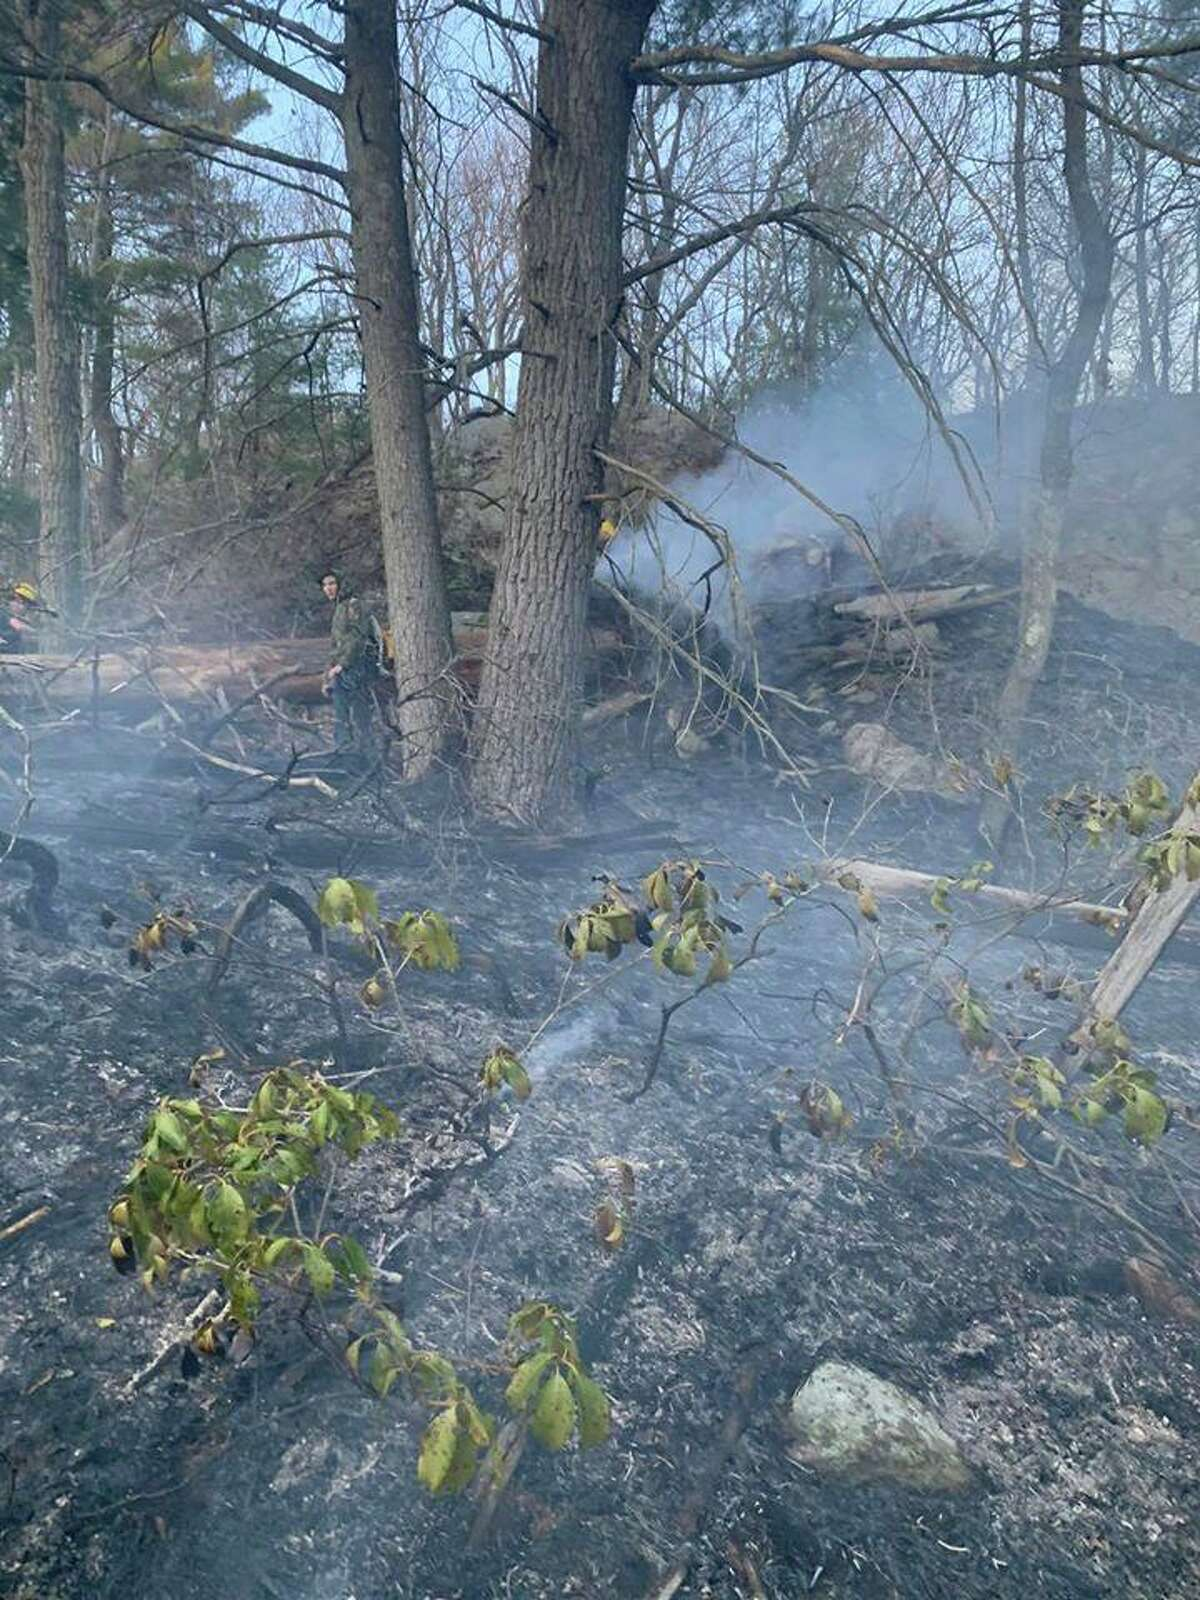 A brush fire deep in the woods off of Skokorat Street on Monday, April 6, 2020.